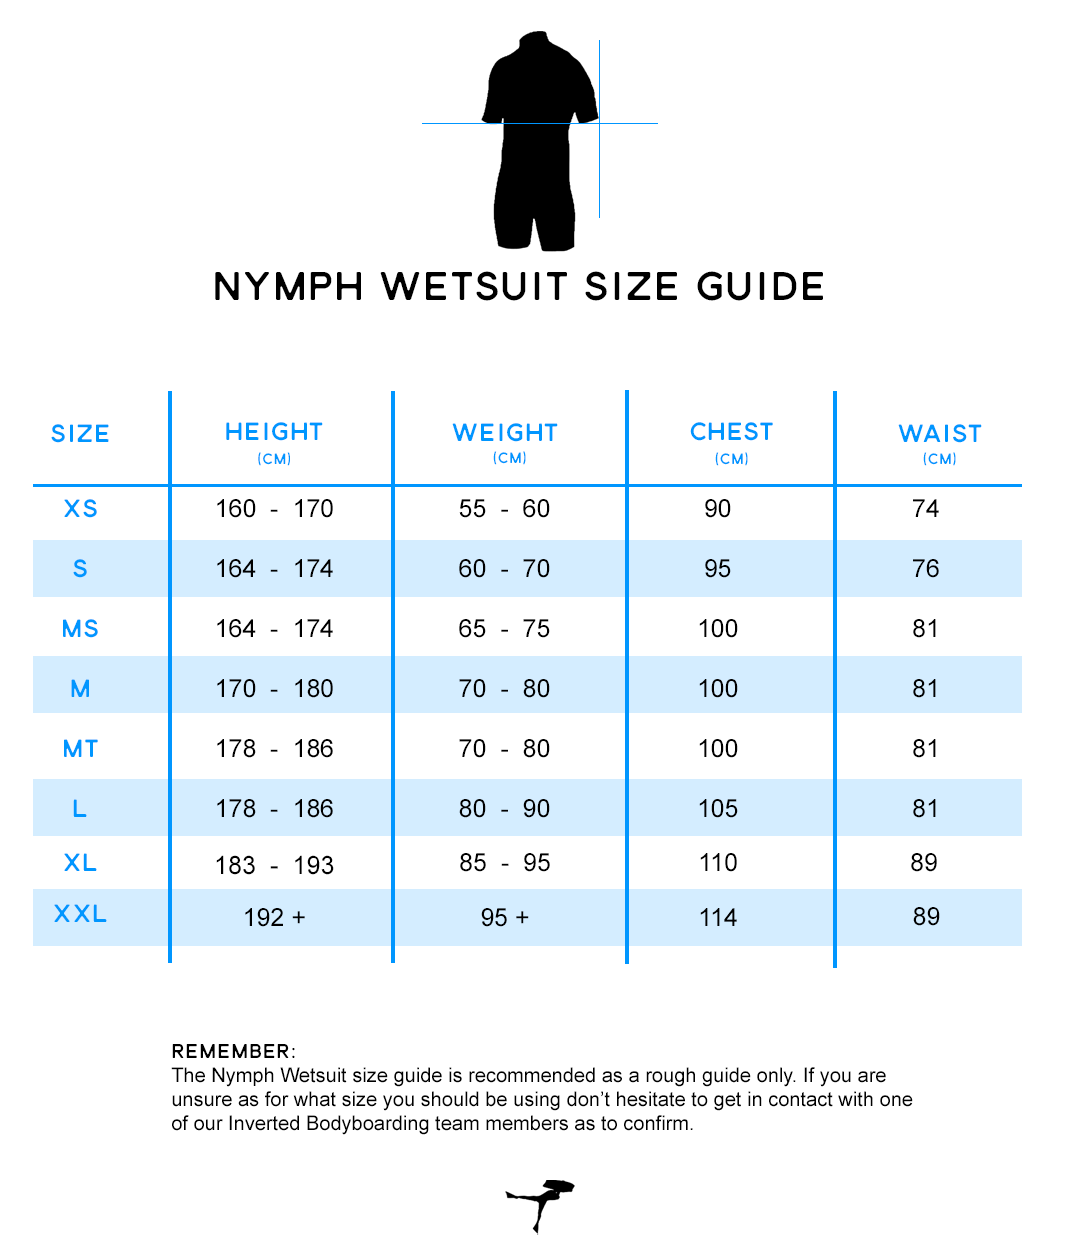 Nymph Wetsuits Size Guide